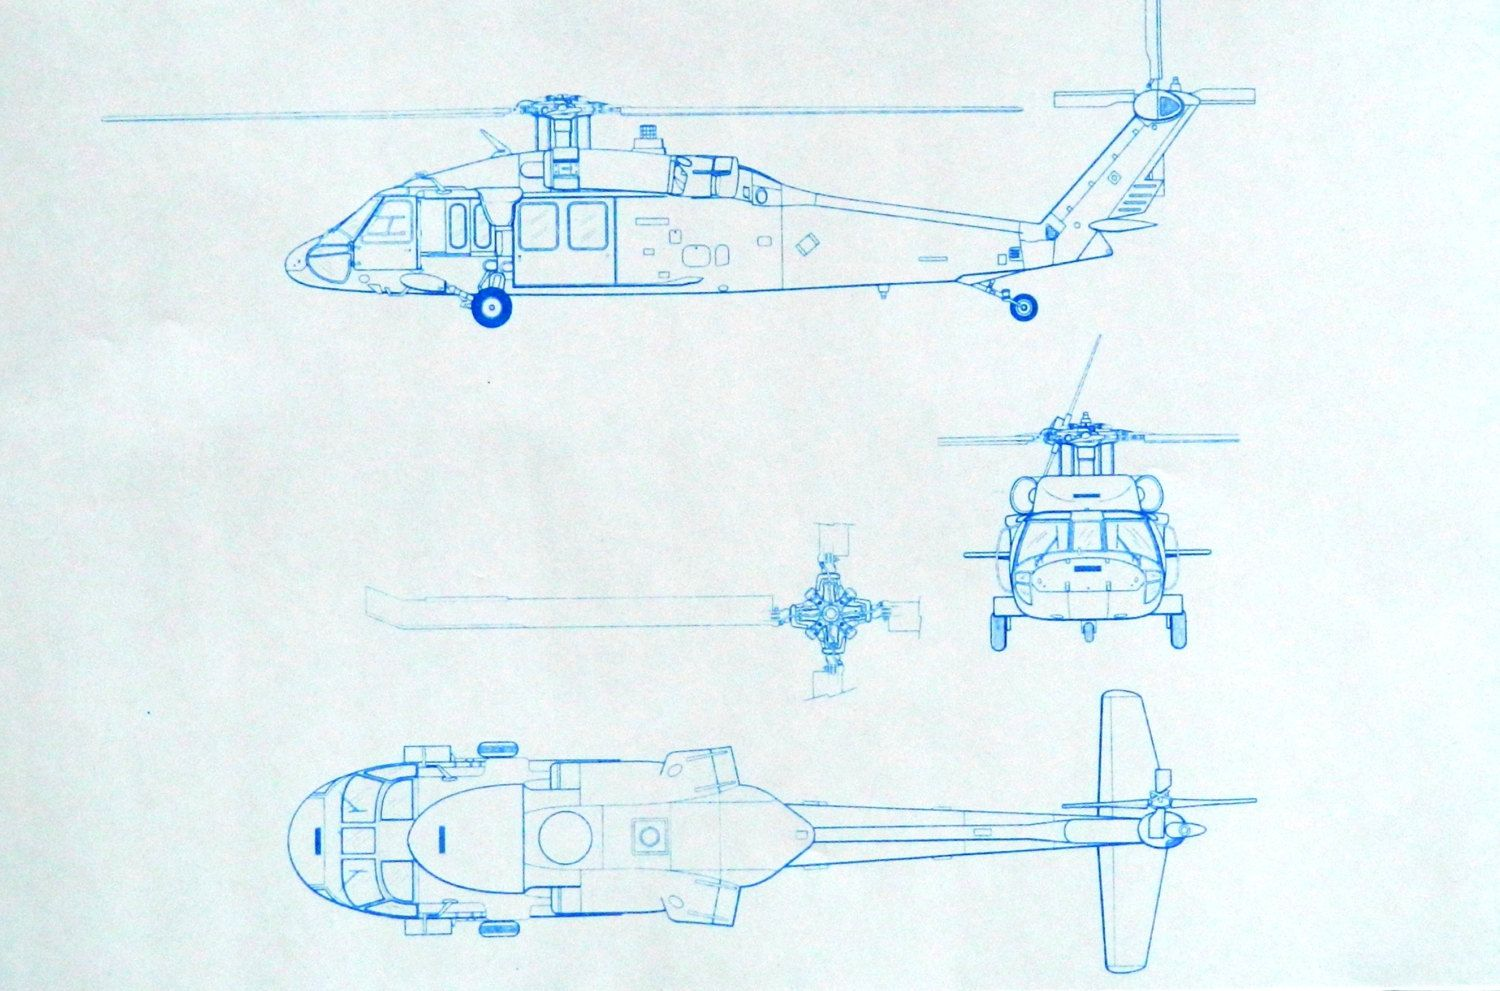 uh 60 blackhawk helicopter blueprint [ 1500 x 991 Pixel ]